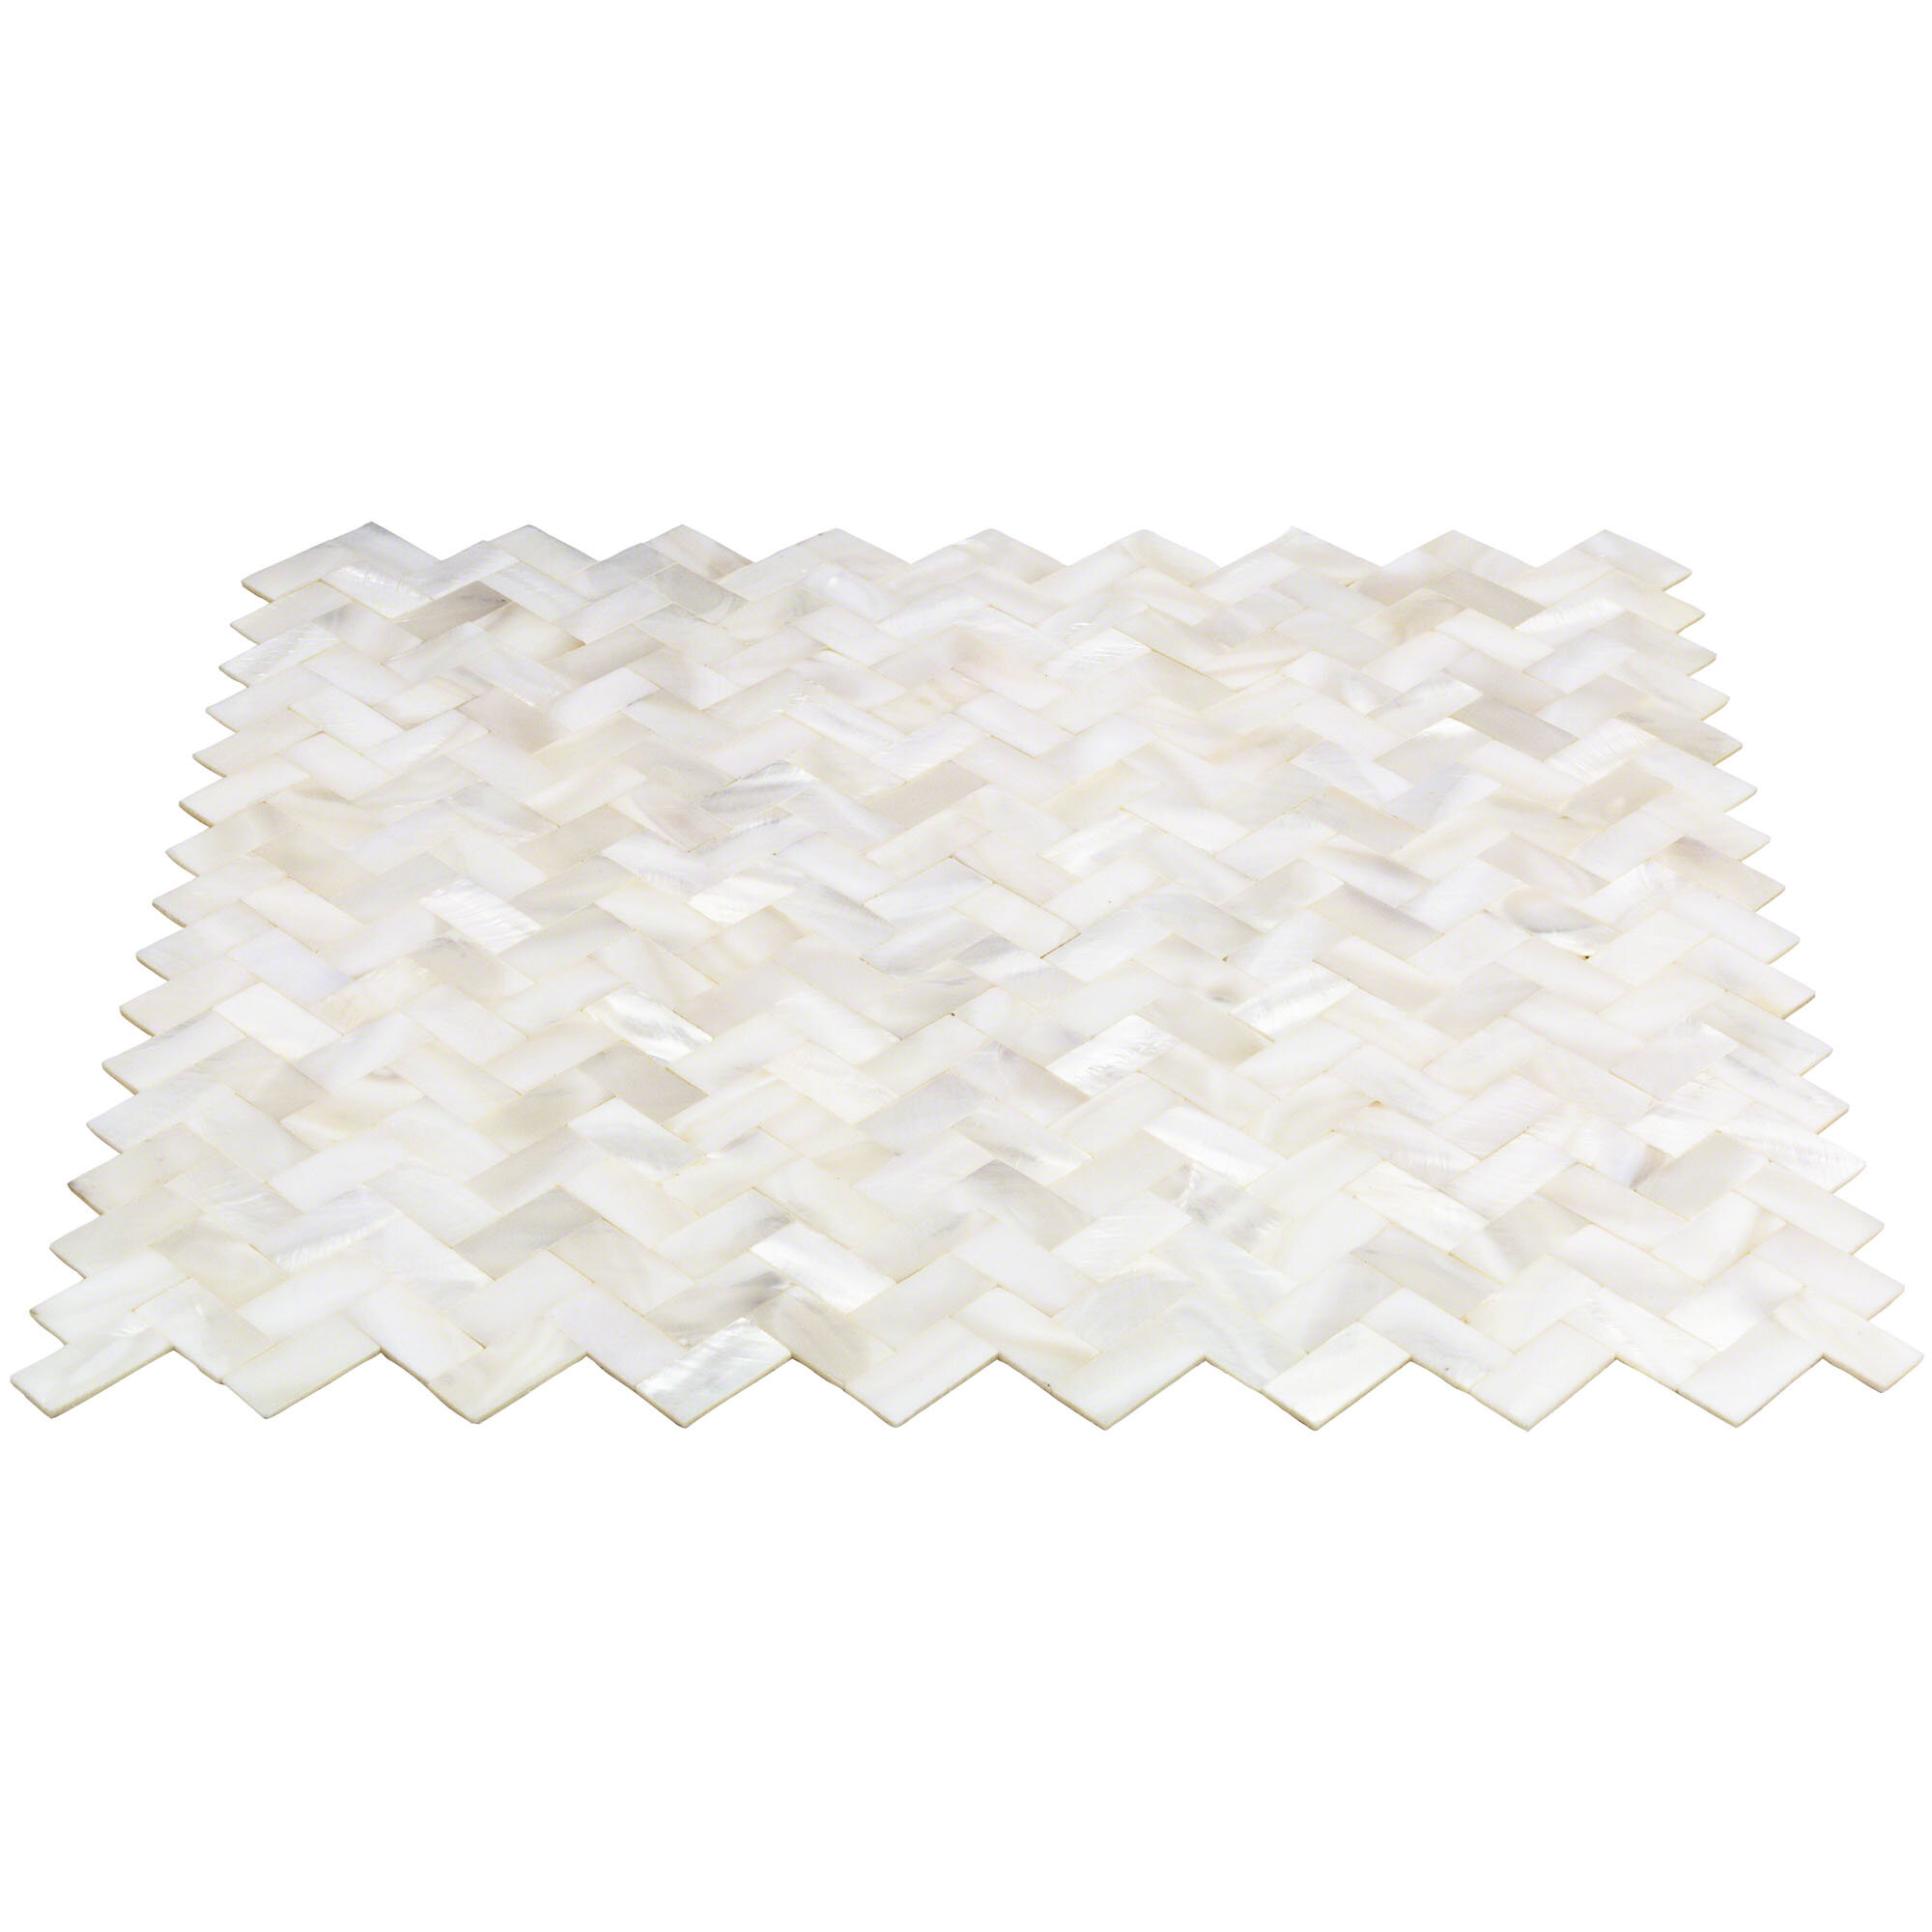 Ivy Hill Tile Lokahi Random Sized Glass Pearl Shell Mosaic Tile In Polished White Pearl Reviews Wayfair